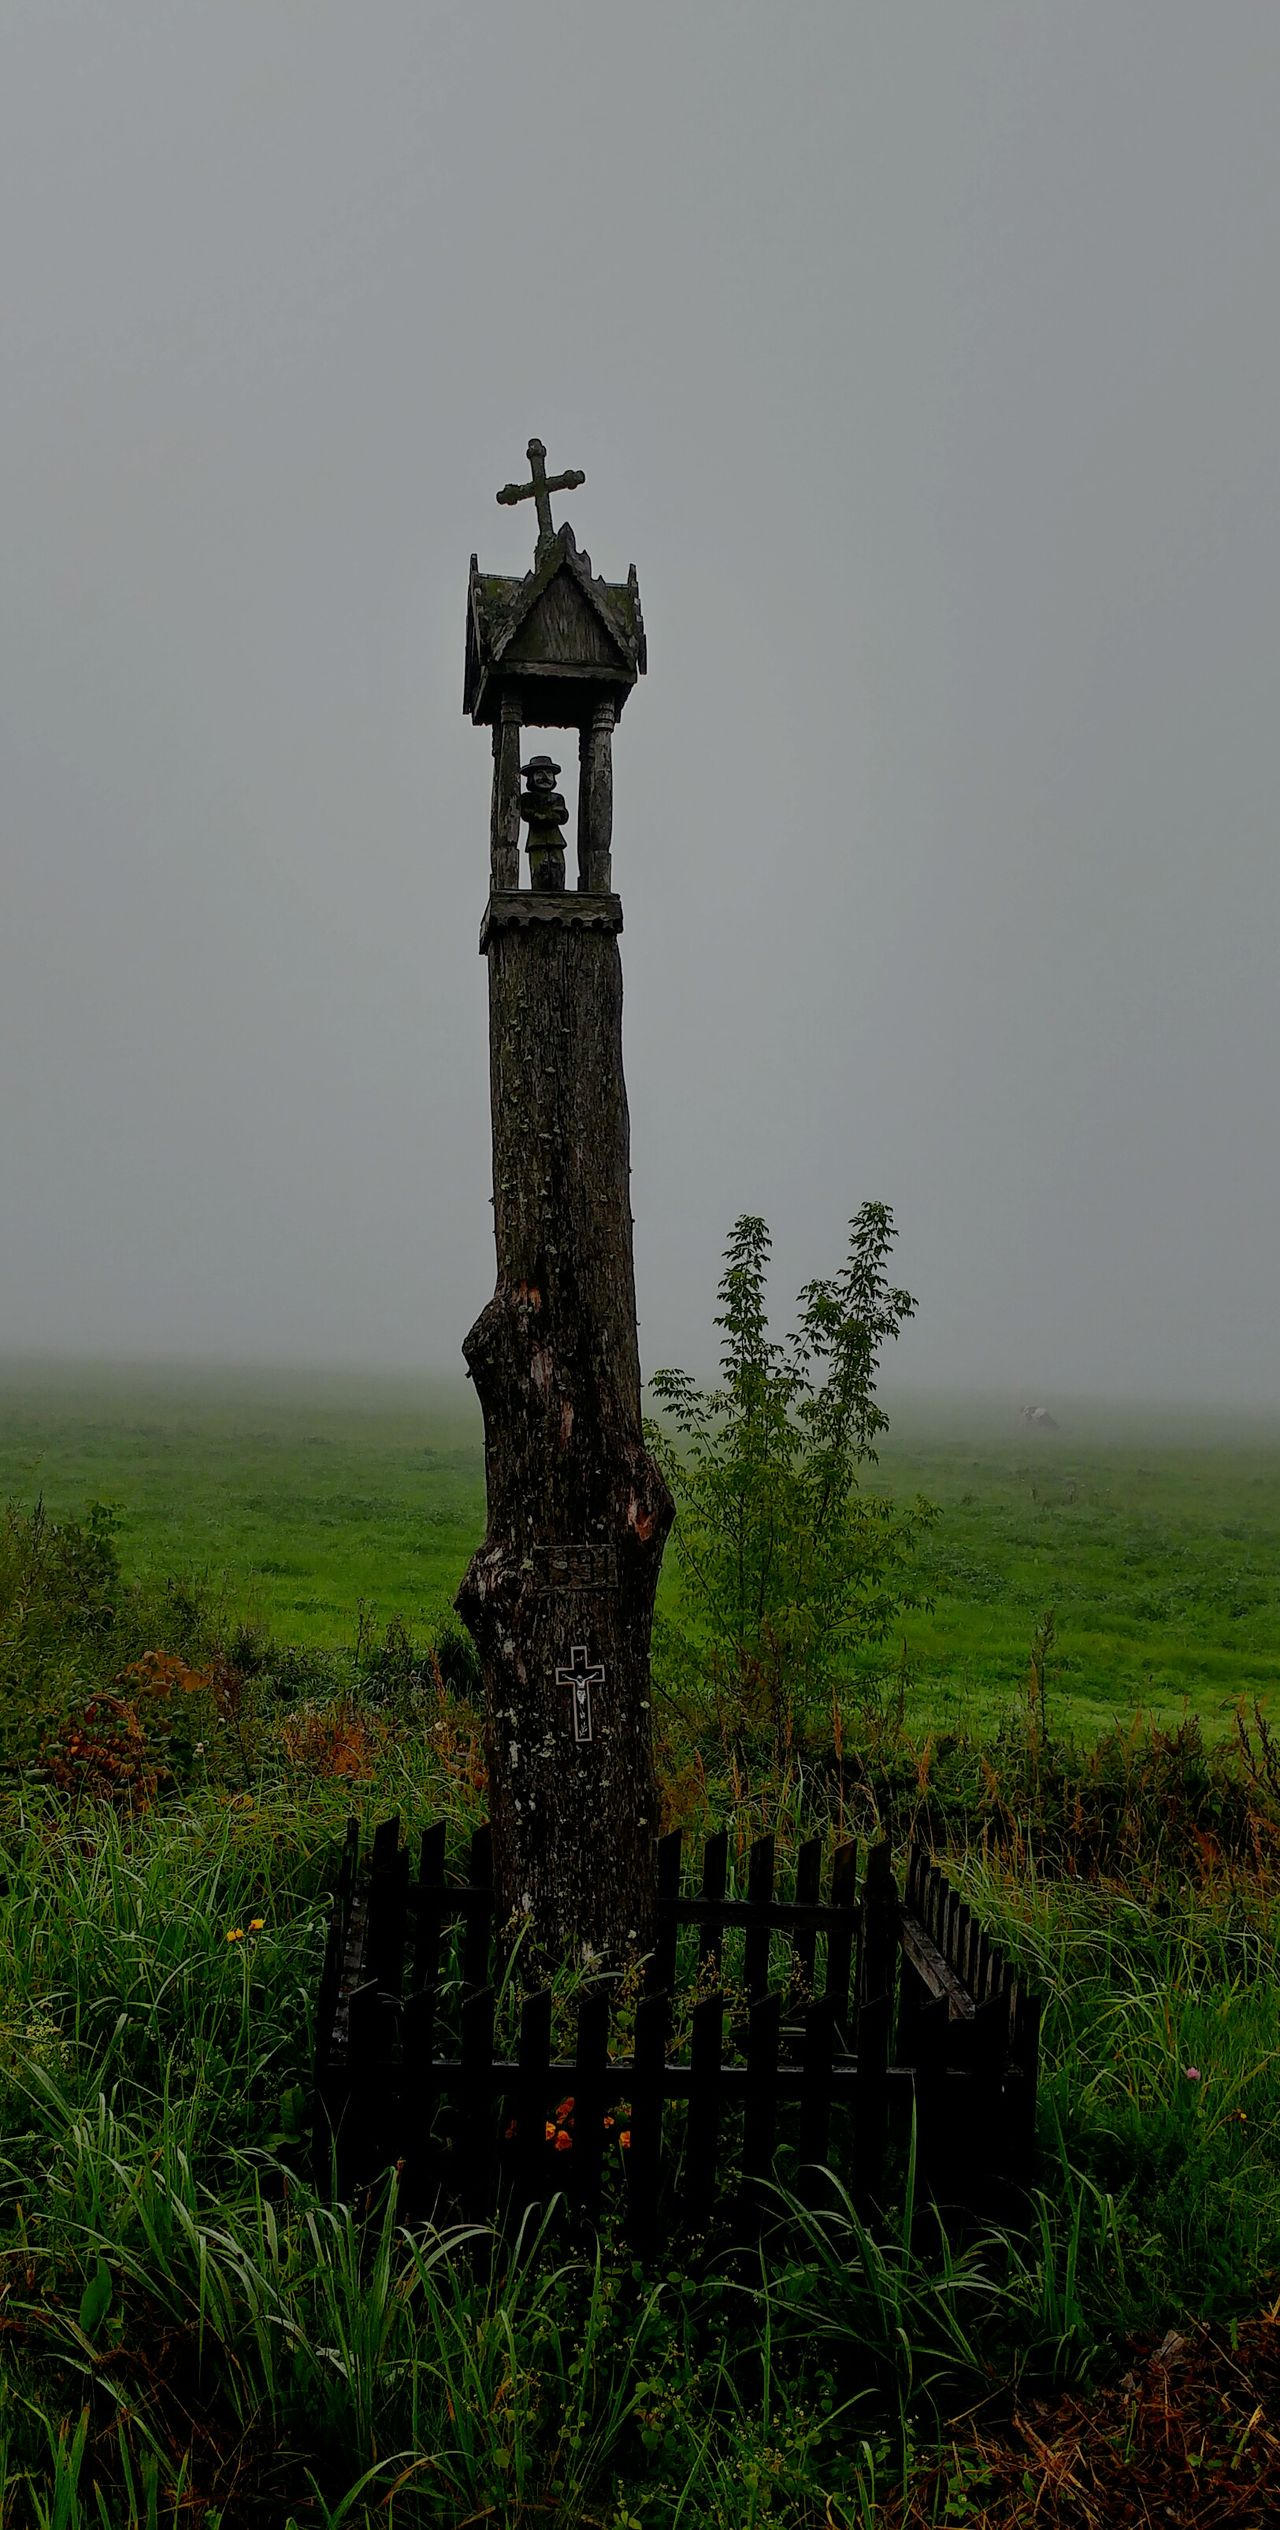 Fog Foggy Grass History Landscape Monument Nature No People Sky Wooden Cross